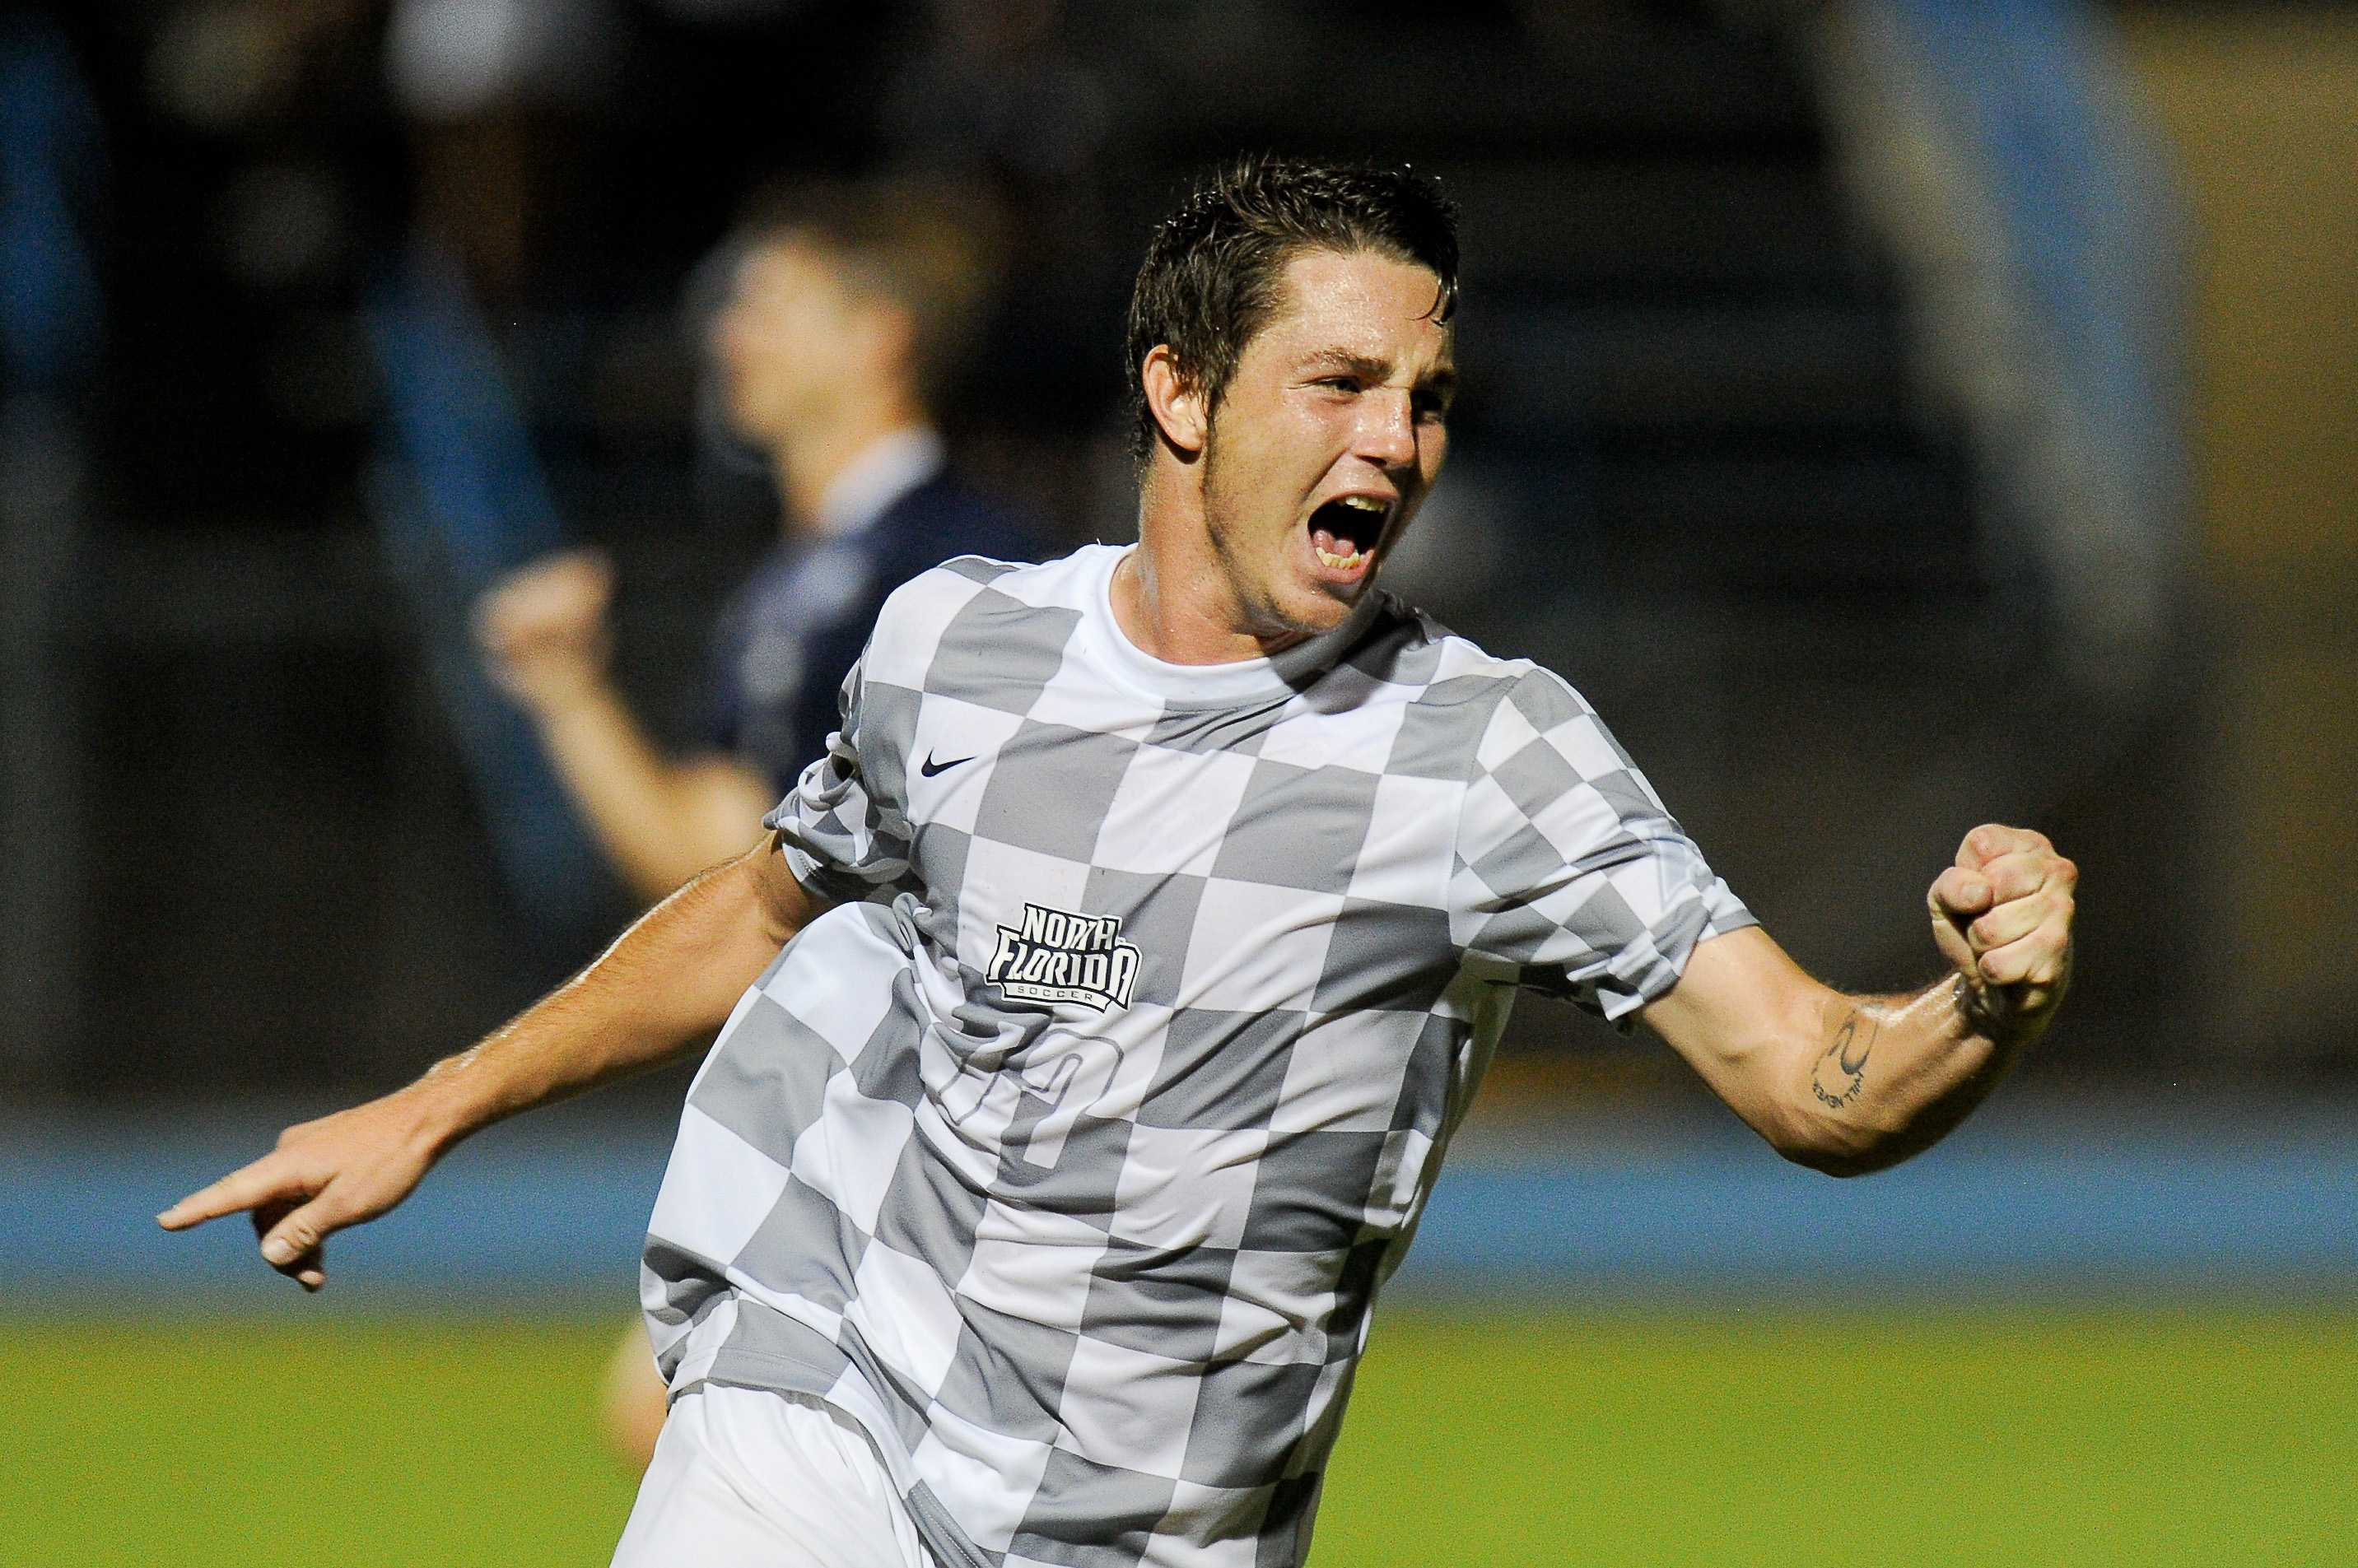 Midfielder Milan Kovacs has scored 3 goals for the Ospreys this season. <i>Photo courtesy of UNF Athletics.<i />